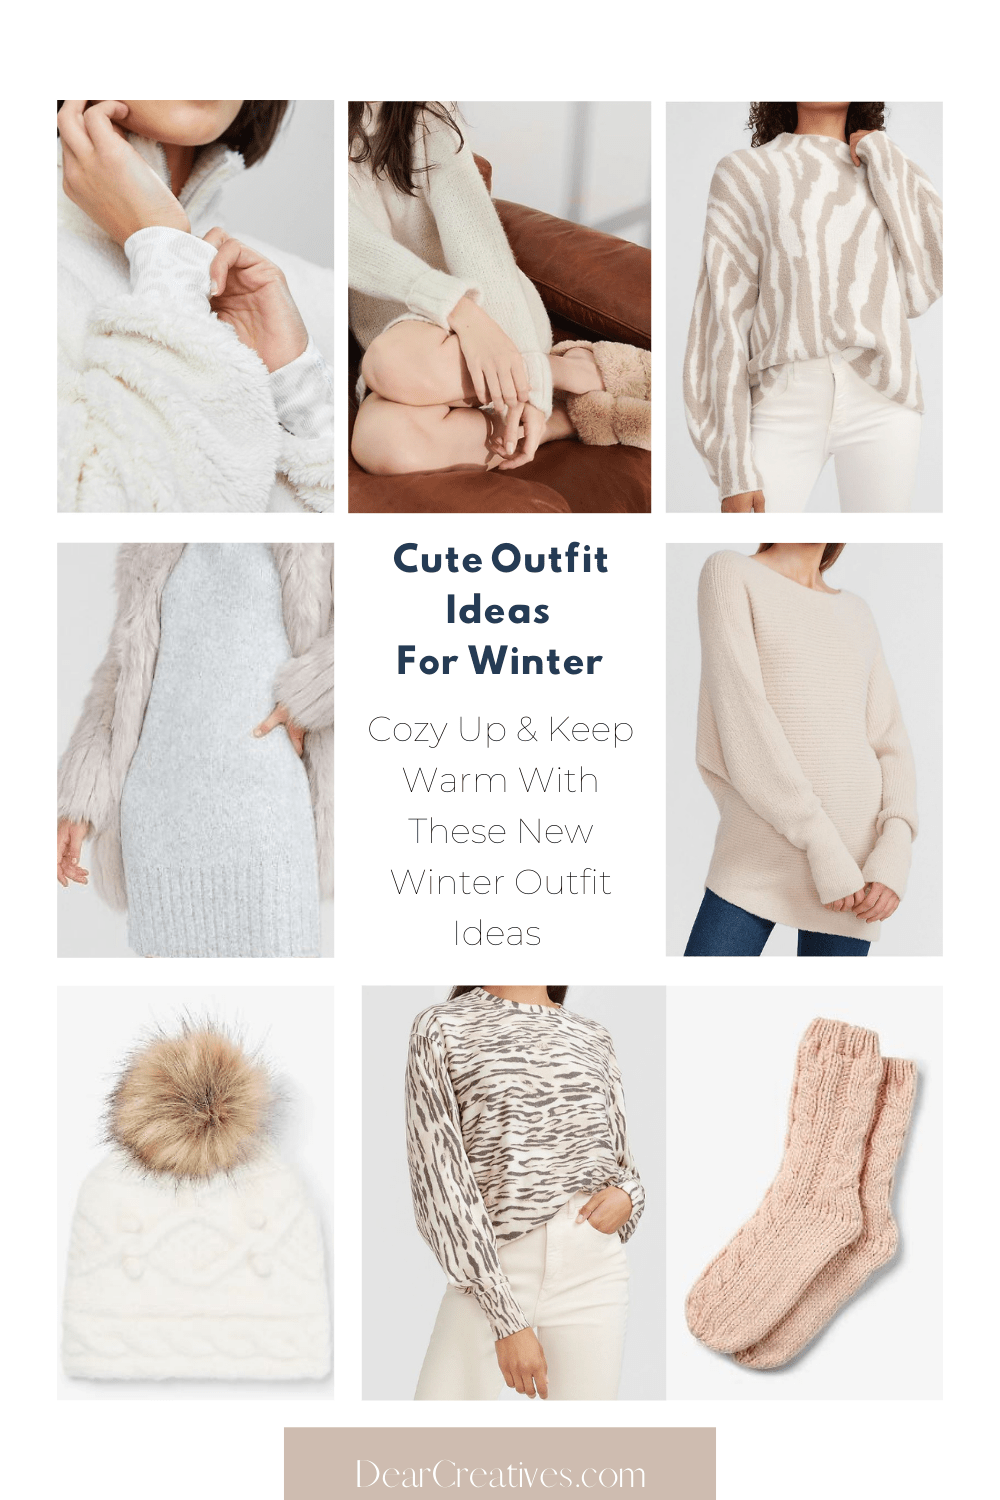 15+ Cute Winter Outfit Ideas To Feel Cozy In!